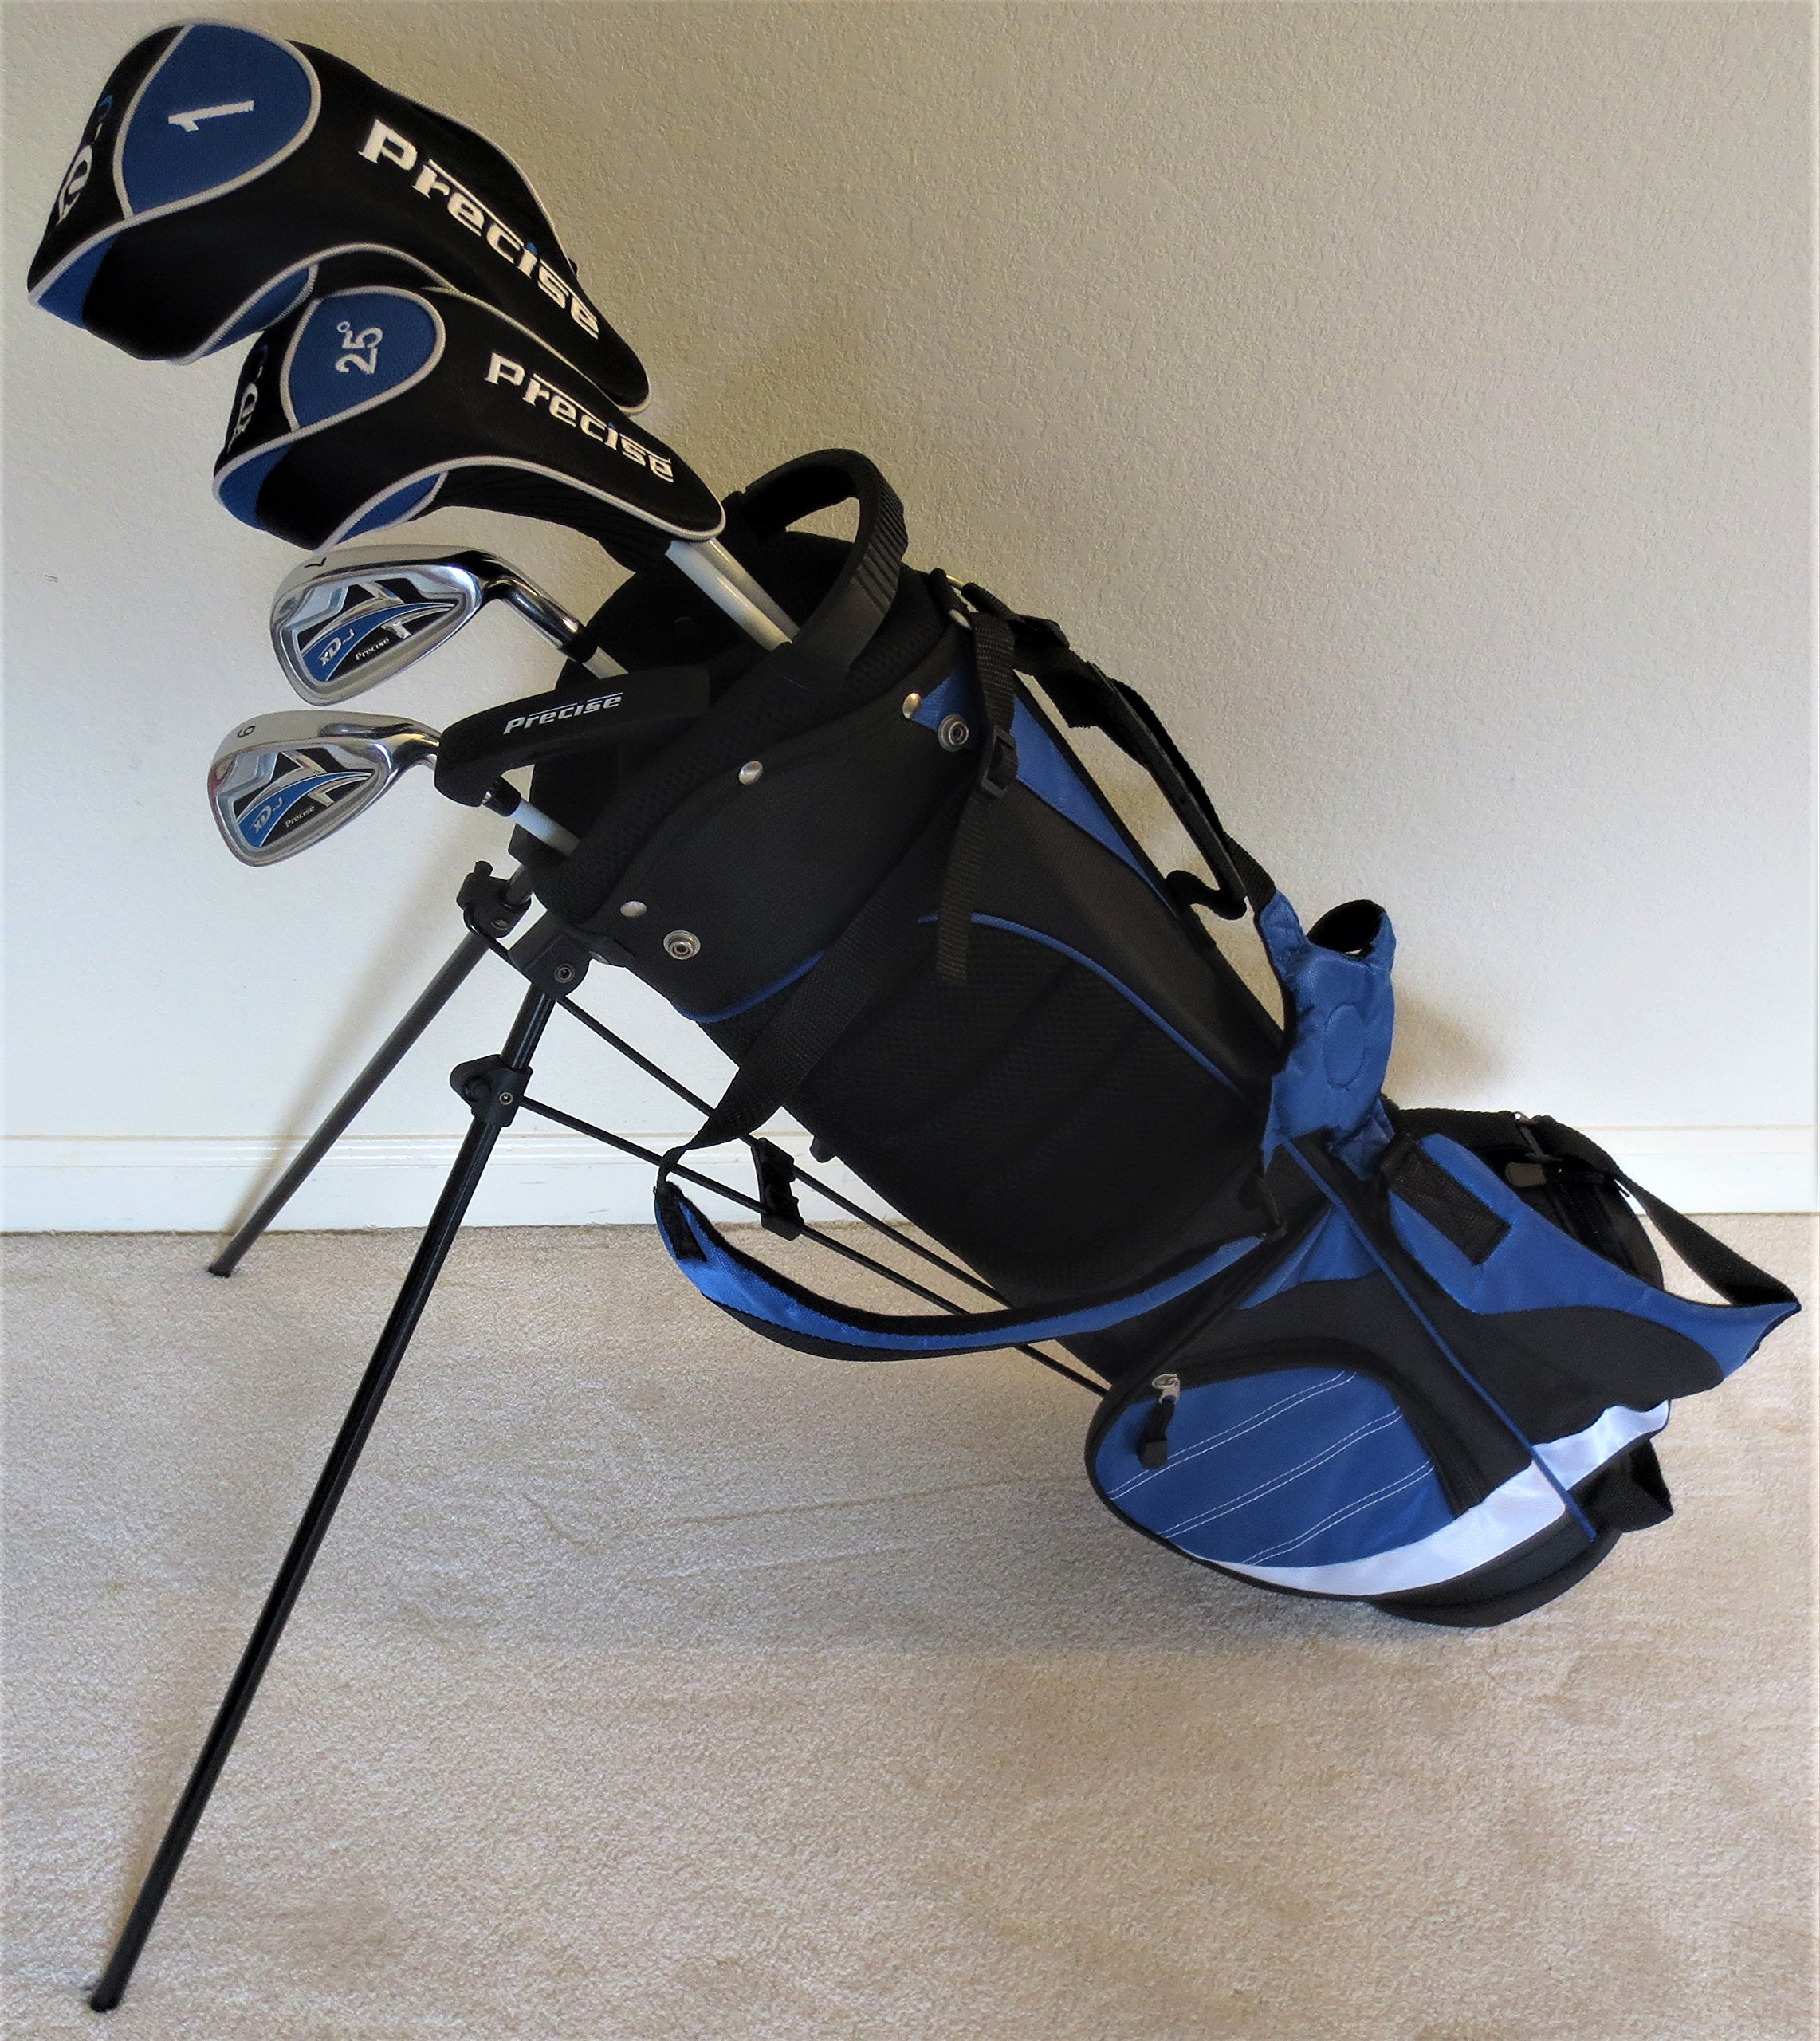 Boys Ages 8-12 Junior Golf Club Set with Stand Bag for Kids Jr. Right Handed Premium Professional Tour Quality by Junior Golf Excellence (Image #1)